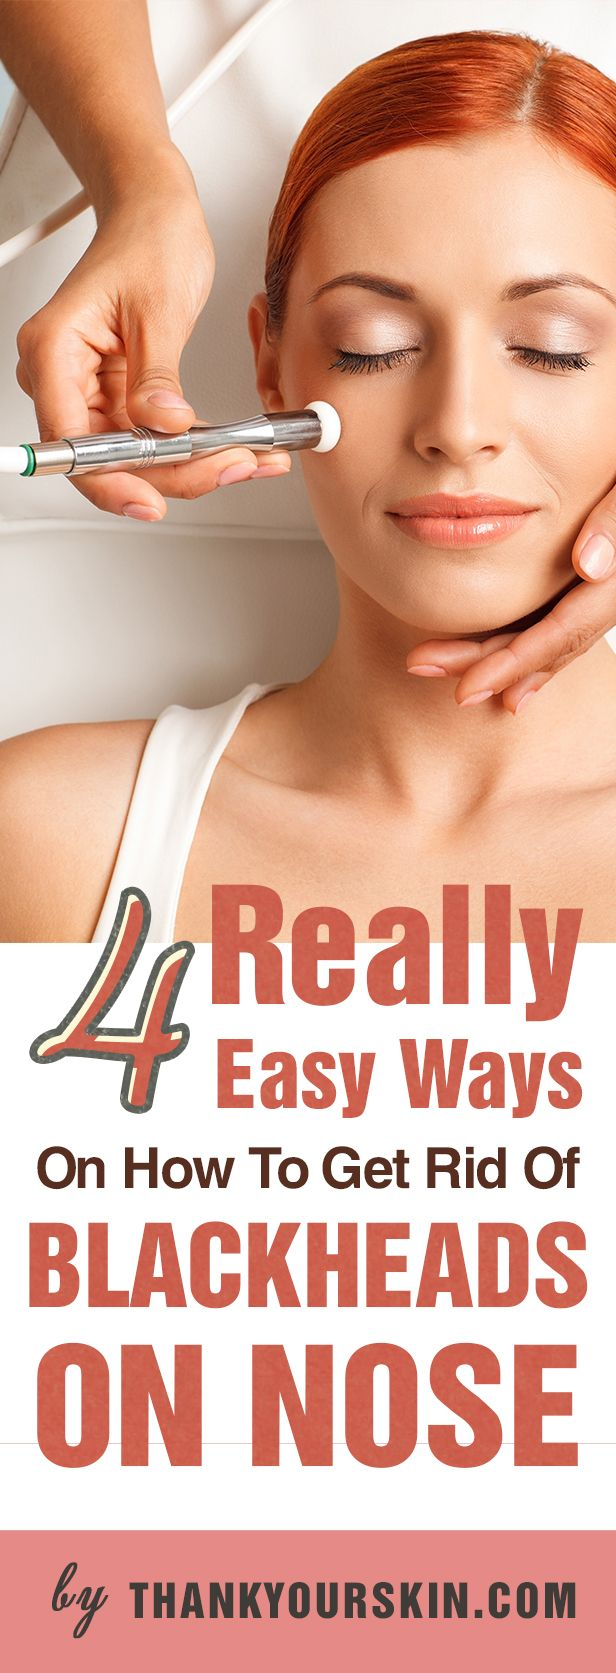 4 Really Easy Ways On How To Get Rid Of Blackheads On Nose. DIY Blackheads removal. Blackhead mask that work - https://www.thankyourskin.com/how-to-get-rid-of-blackheads-on-nose/